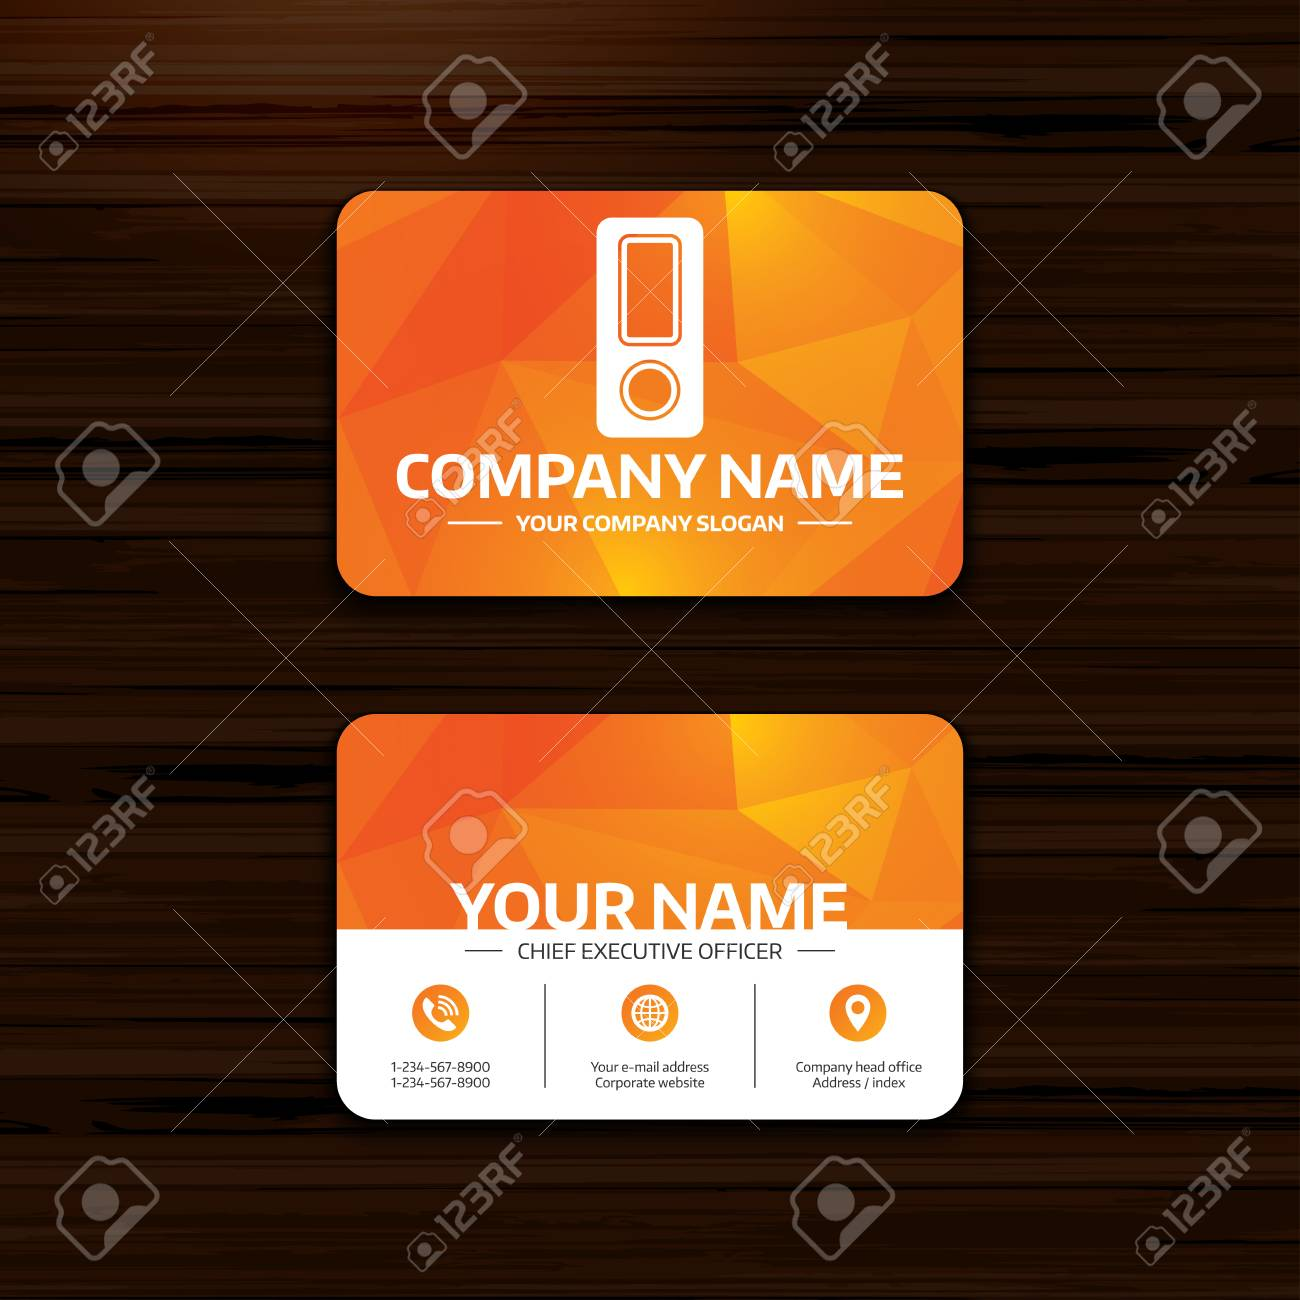 Business or visiting card template document folder sign accounting business or visiting card template document folder sign accounting binder symbol bookkeeping management friedricerecipe Gallery